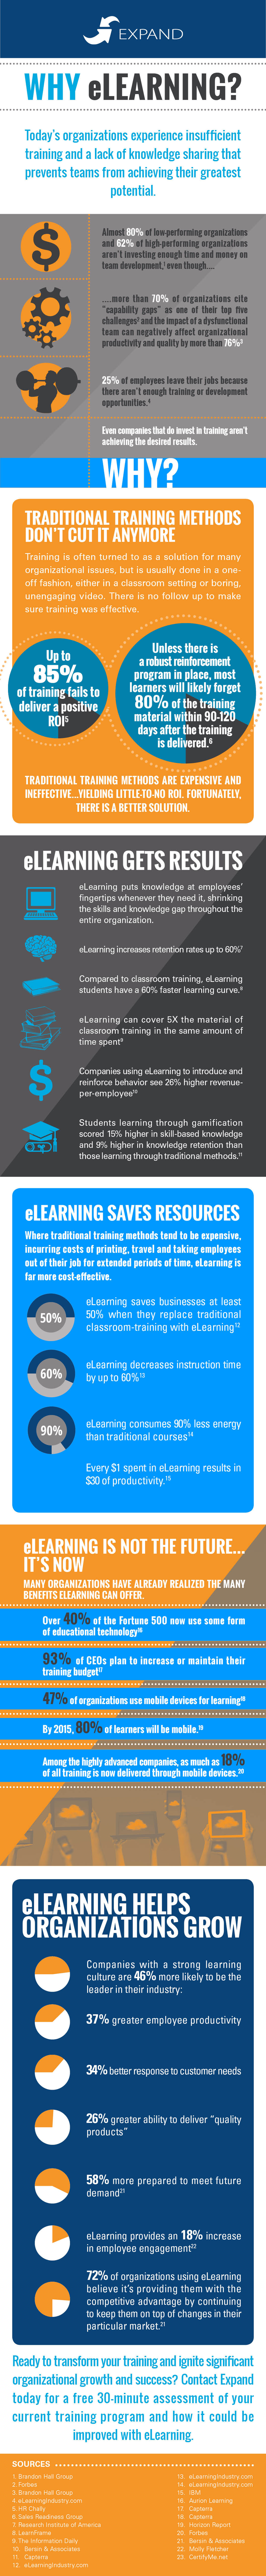 102614_infographic_expand_elearning_02.jpg